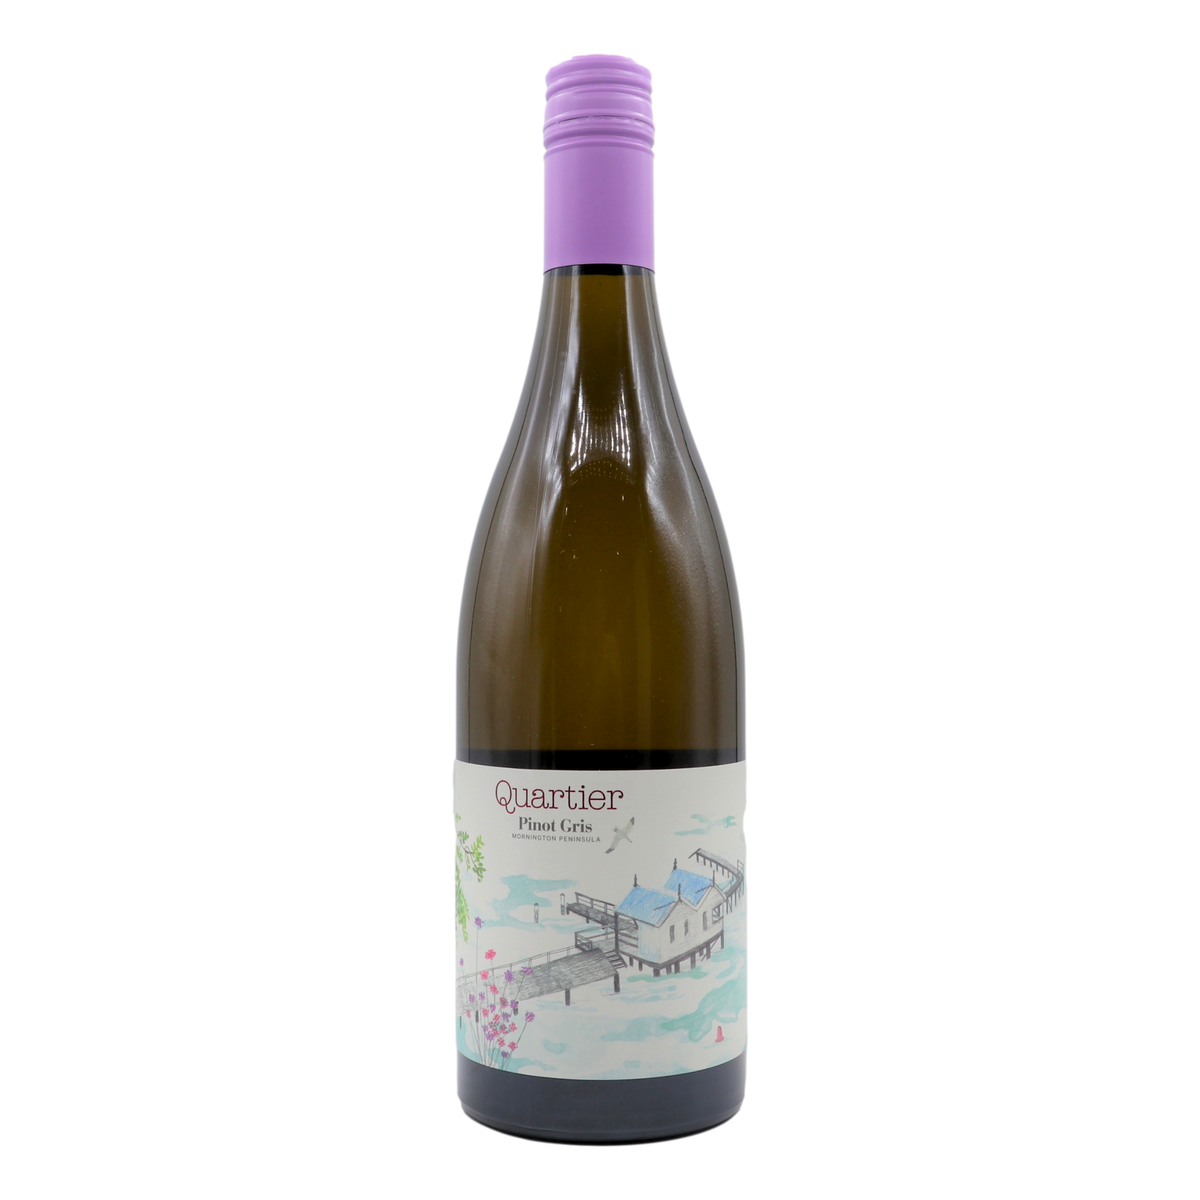 Port Phillip Estate Quartier Pinot Gris